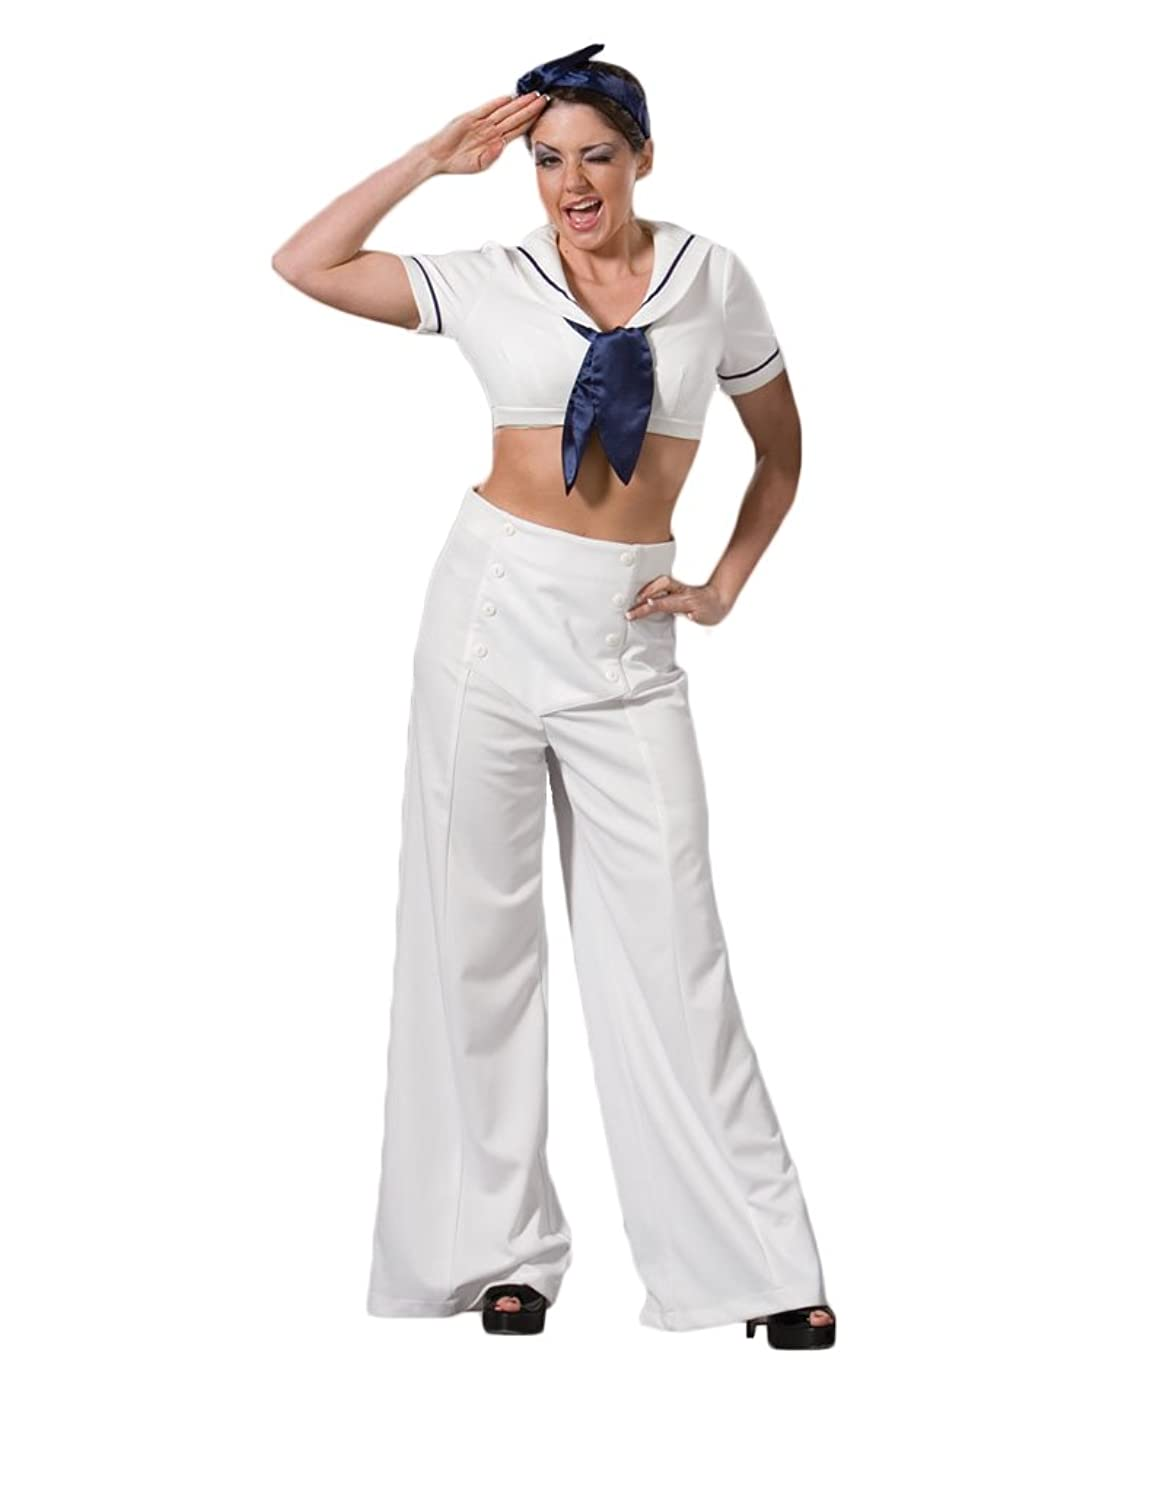 1940s Swing Pants & Sailor Trousers- Wide Leg, High Waist Navy Sailor World War II Pin-Up Girl Theater Costume $149.99 AT vintagedancer.com